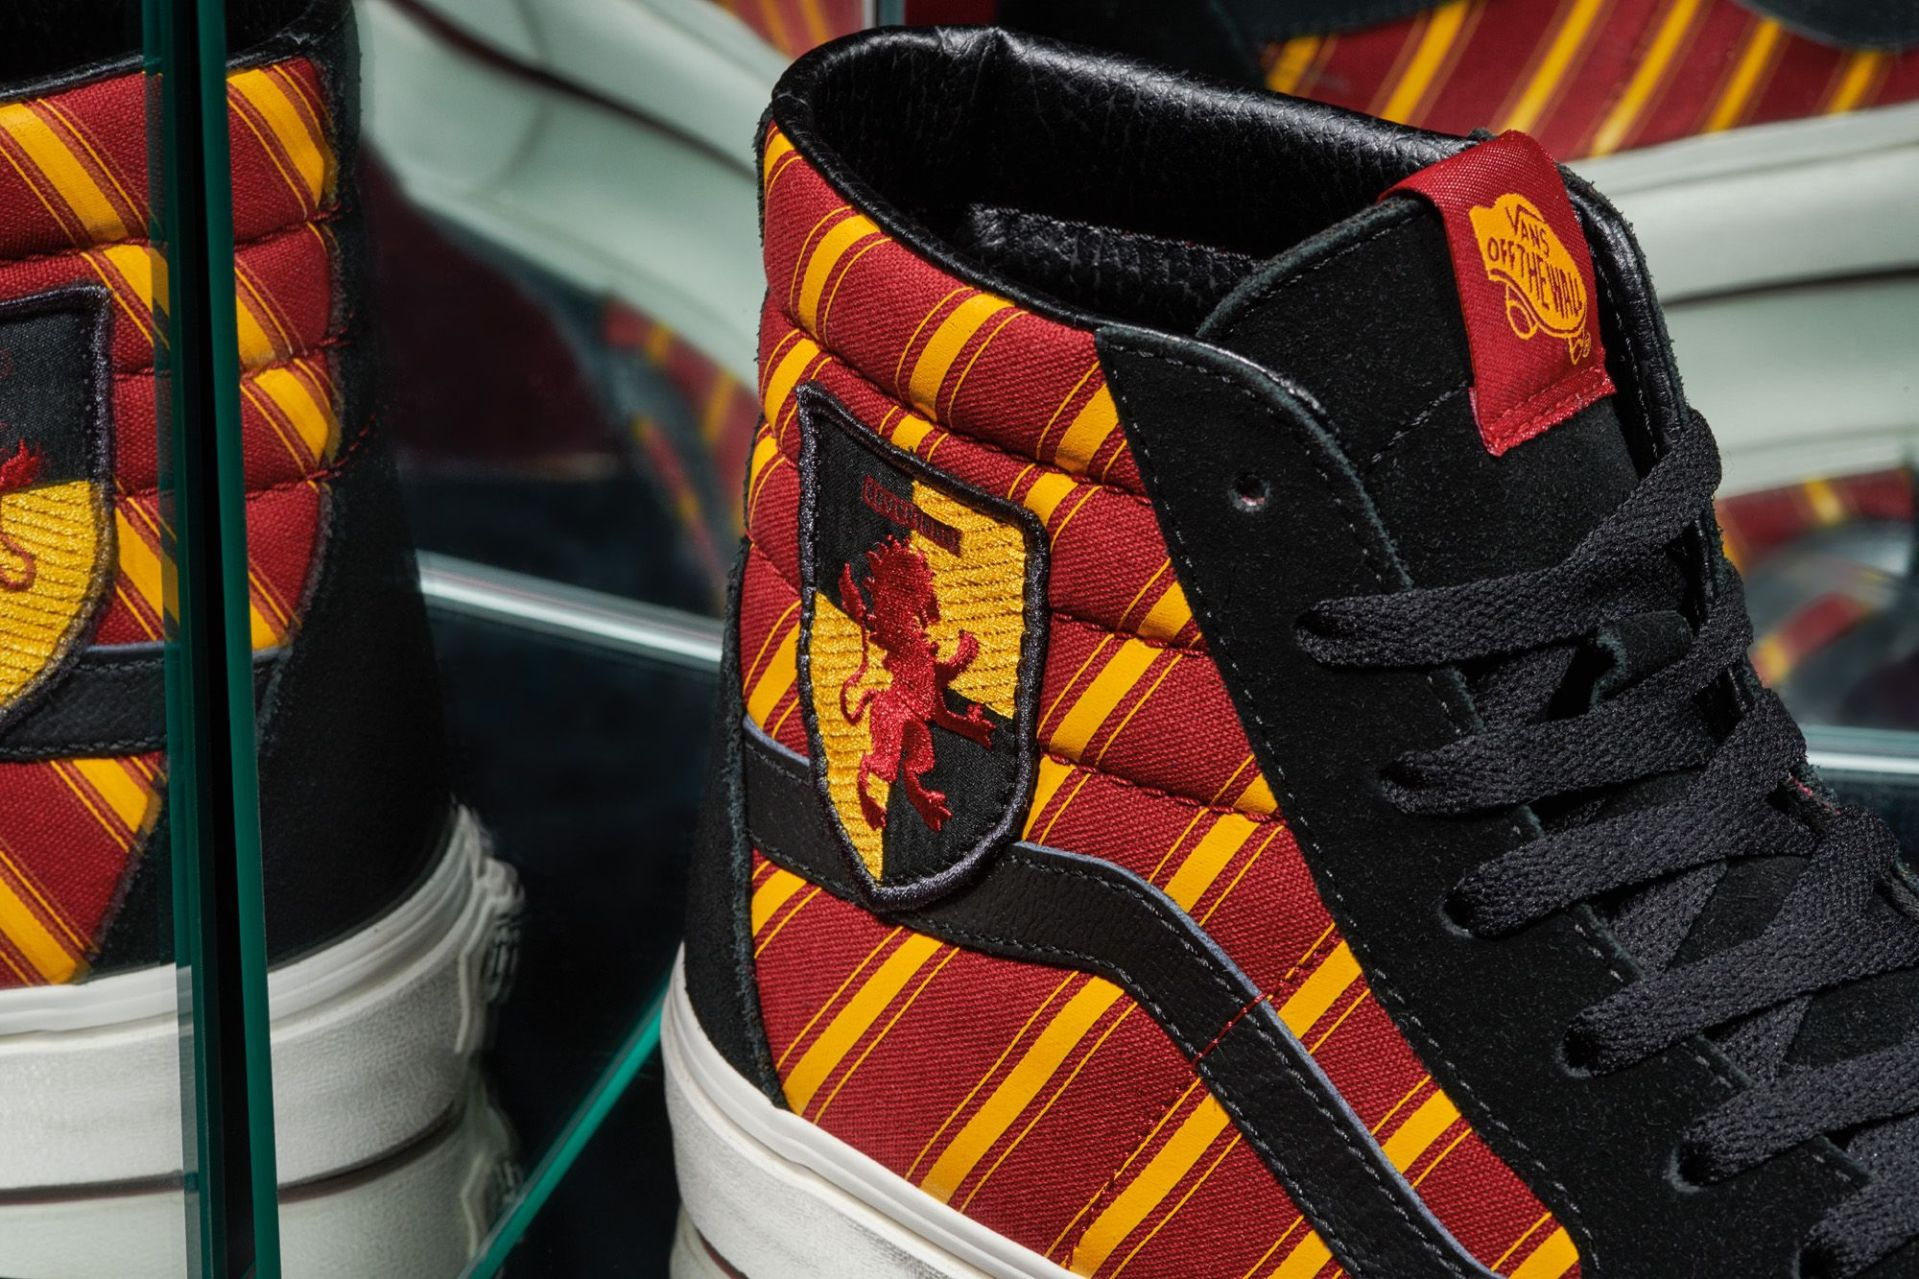 FA19_Classics_VN0A4BV6XK8_SK8HI_HARRYPOTTER_GRYFFINDOR_Multi_Elevated_Macro1